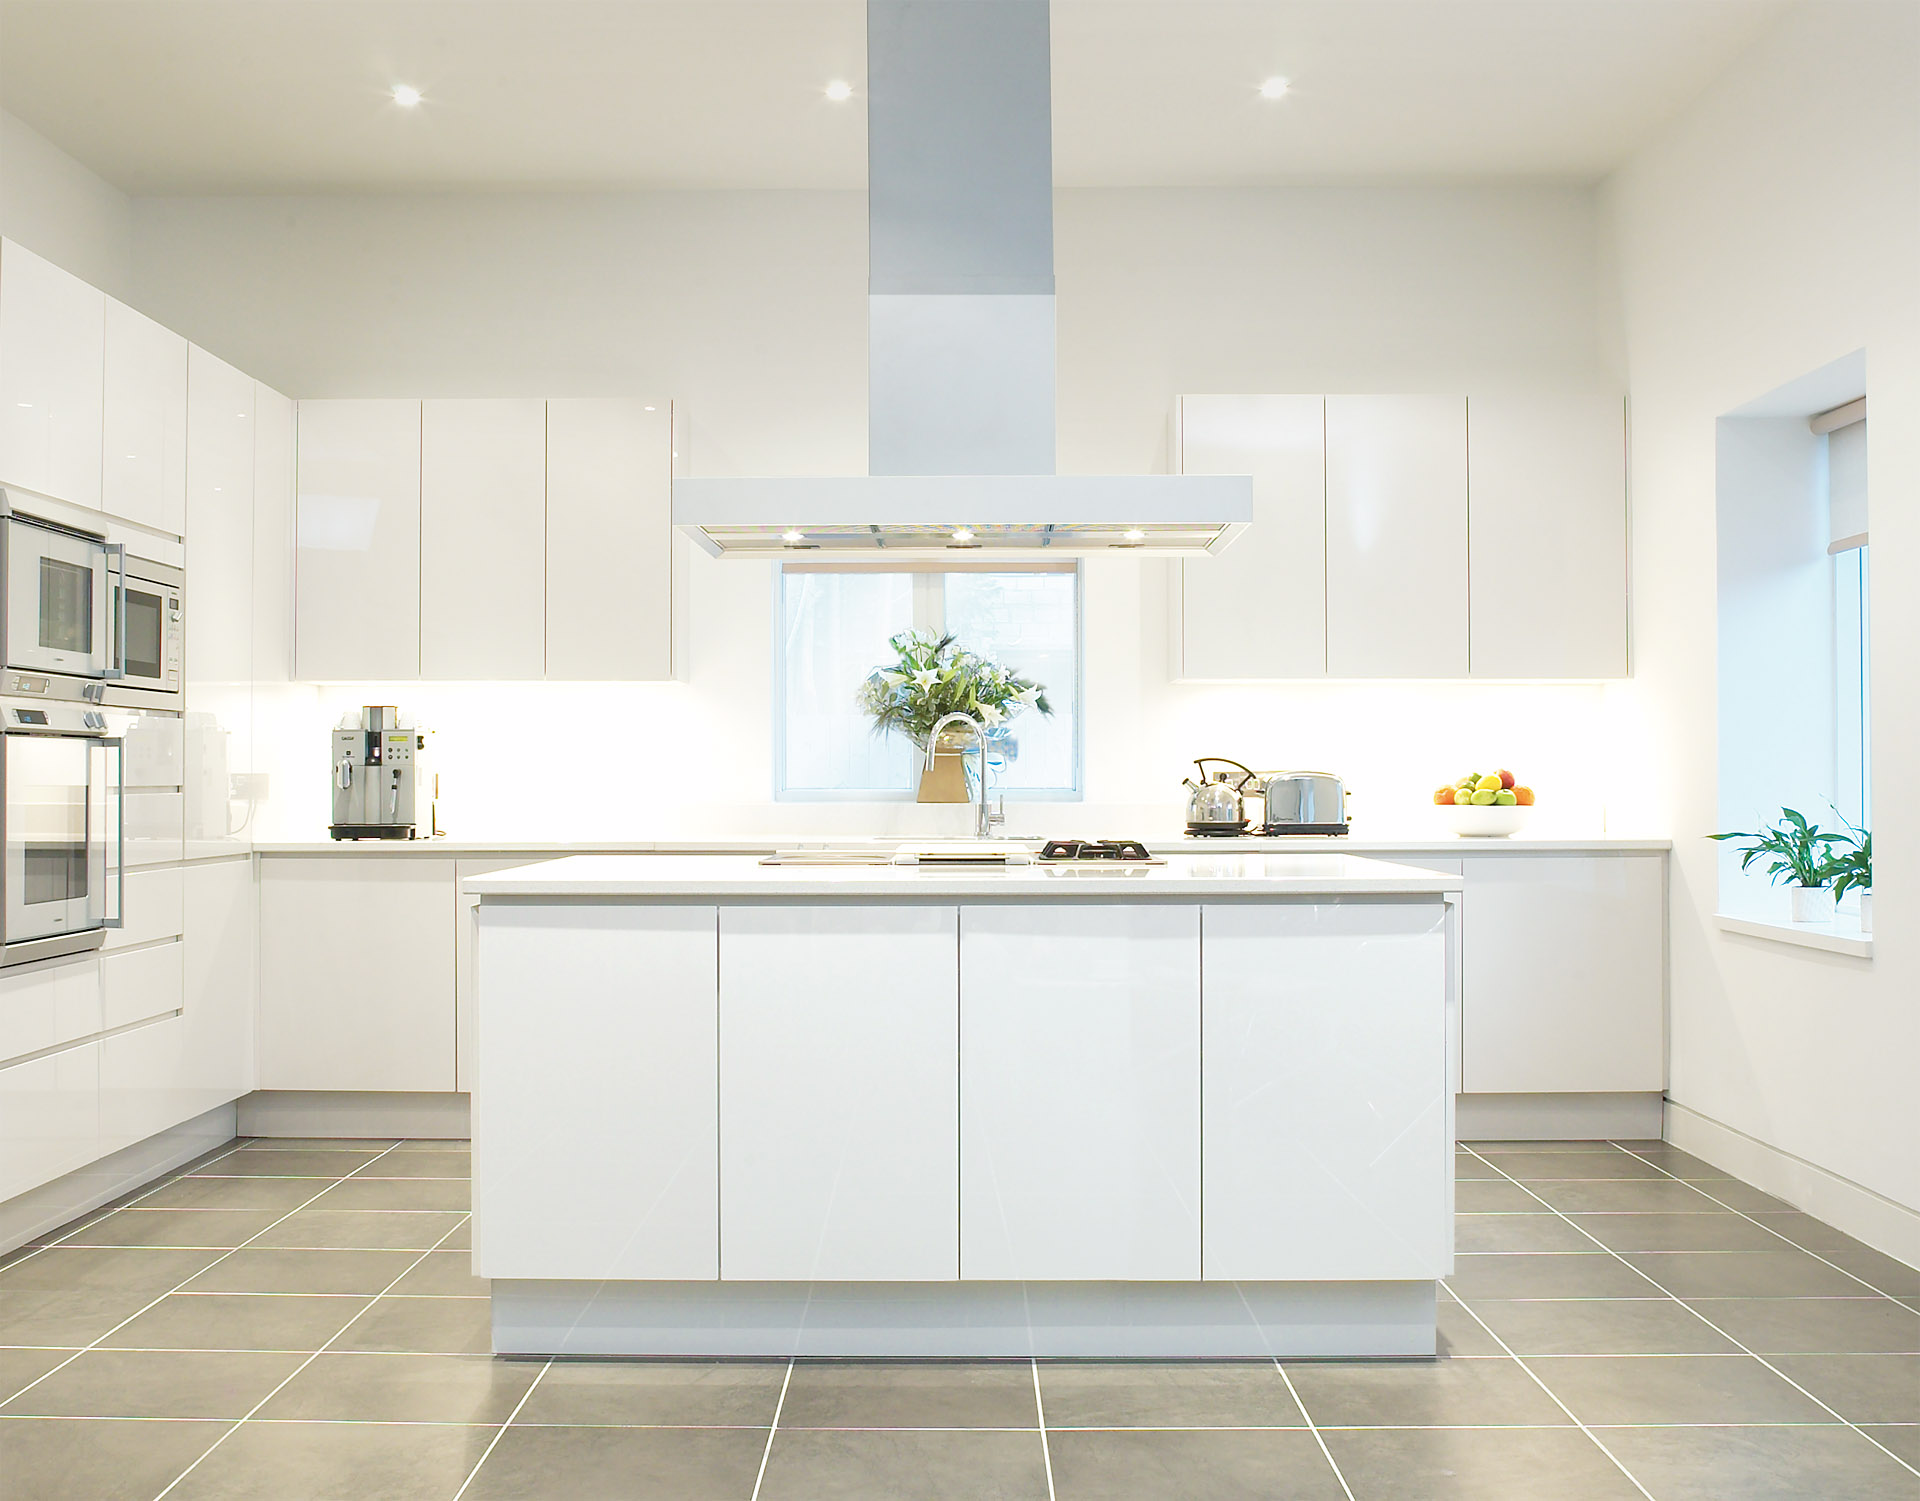 Award Winning Kitchens | Alwood Kitchens by Alfred Briggs